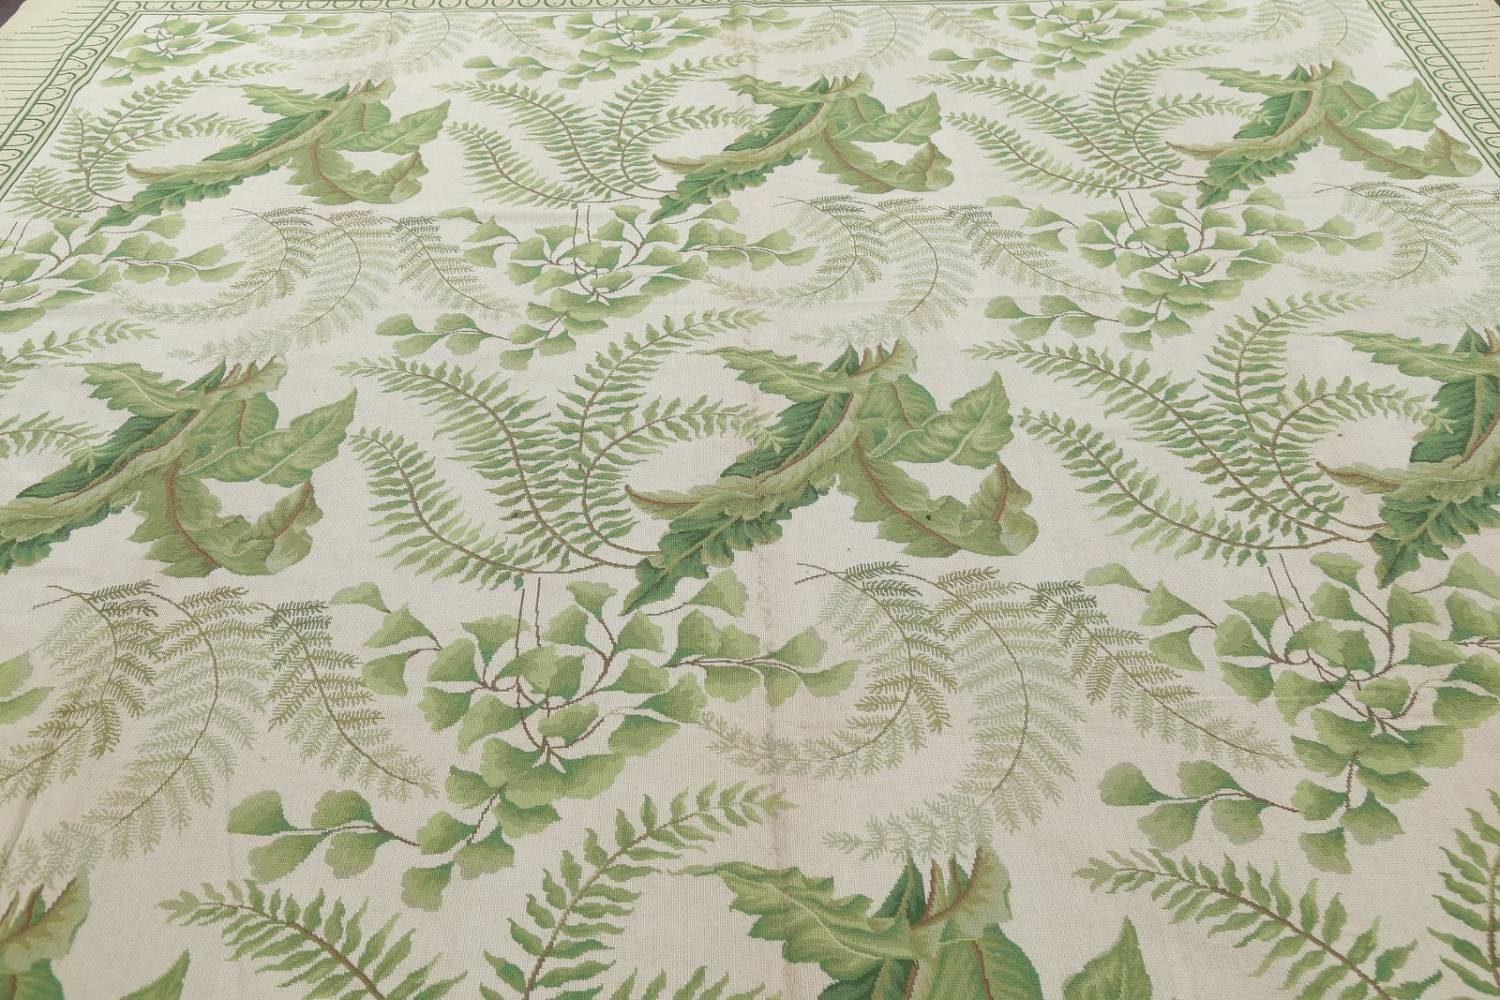 Mansion Floral Green Aubusson Savonnerie Needle-Point Chinese Wool Rug 11x16 image 10